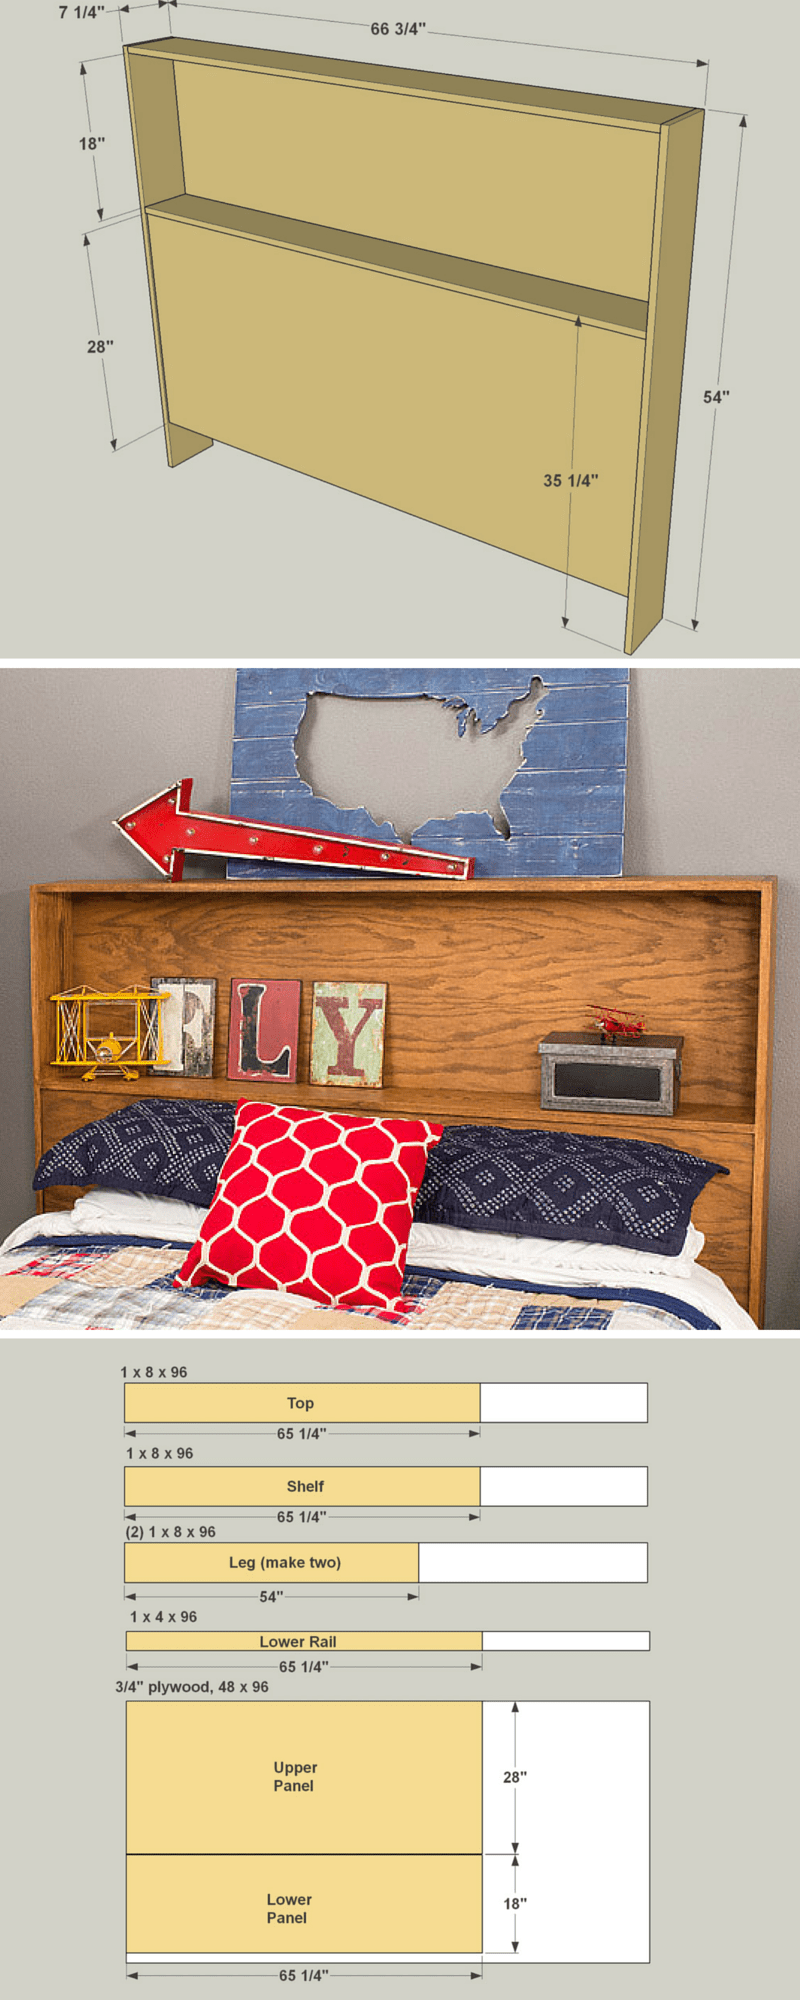 How to Build a DIY Storage Headboard | Free Printable Project Plans on buildsomething.com | This headboard offers a storage shelf